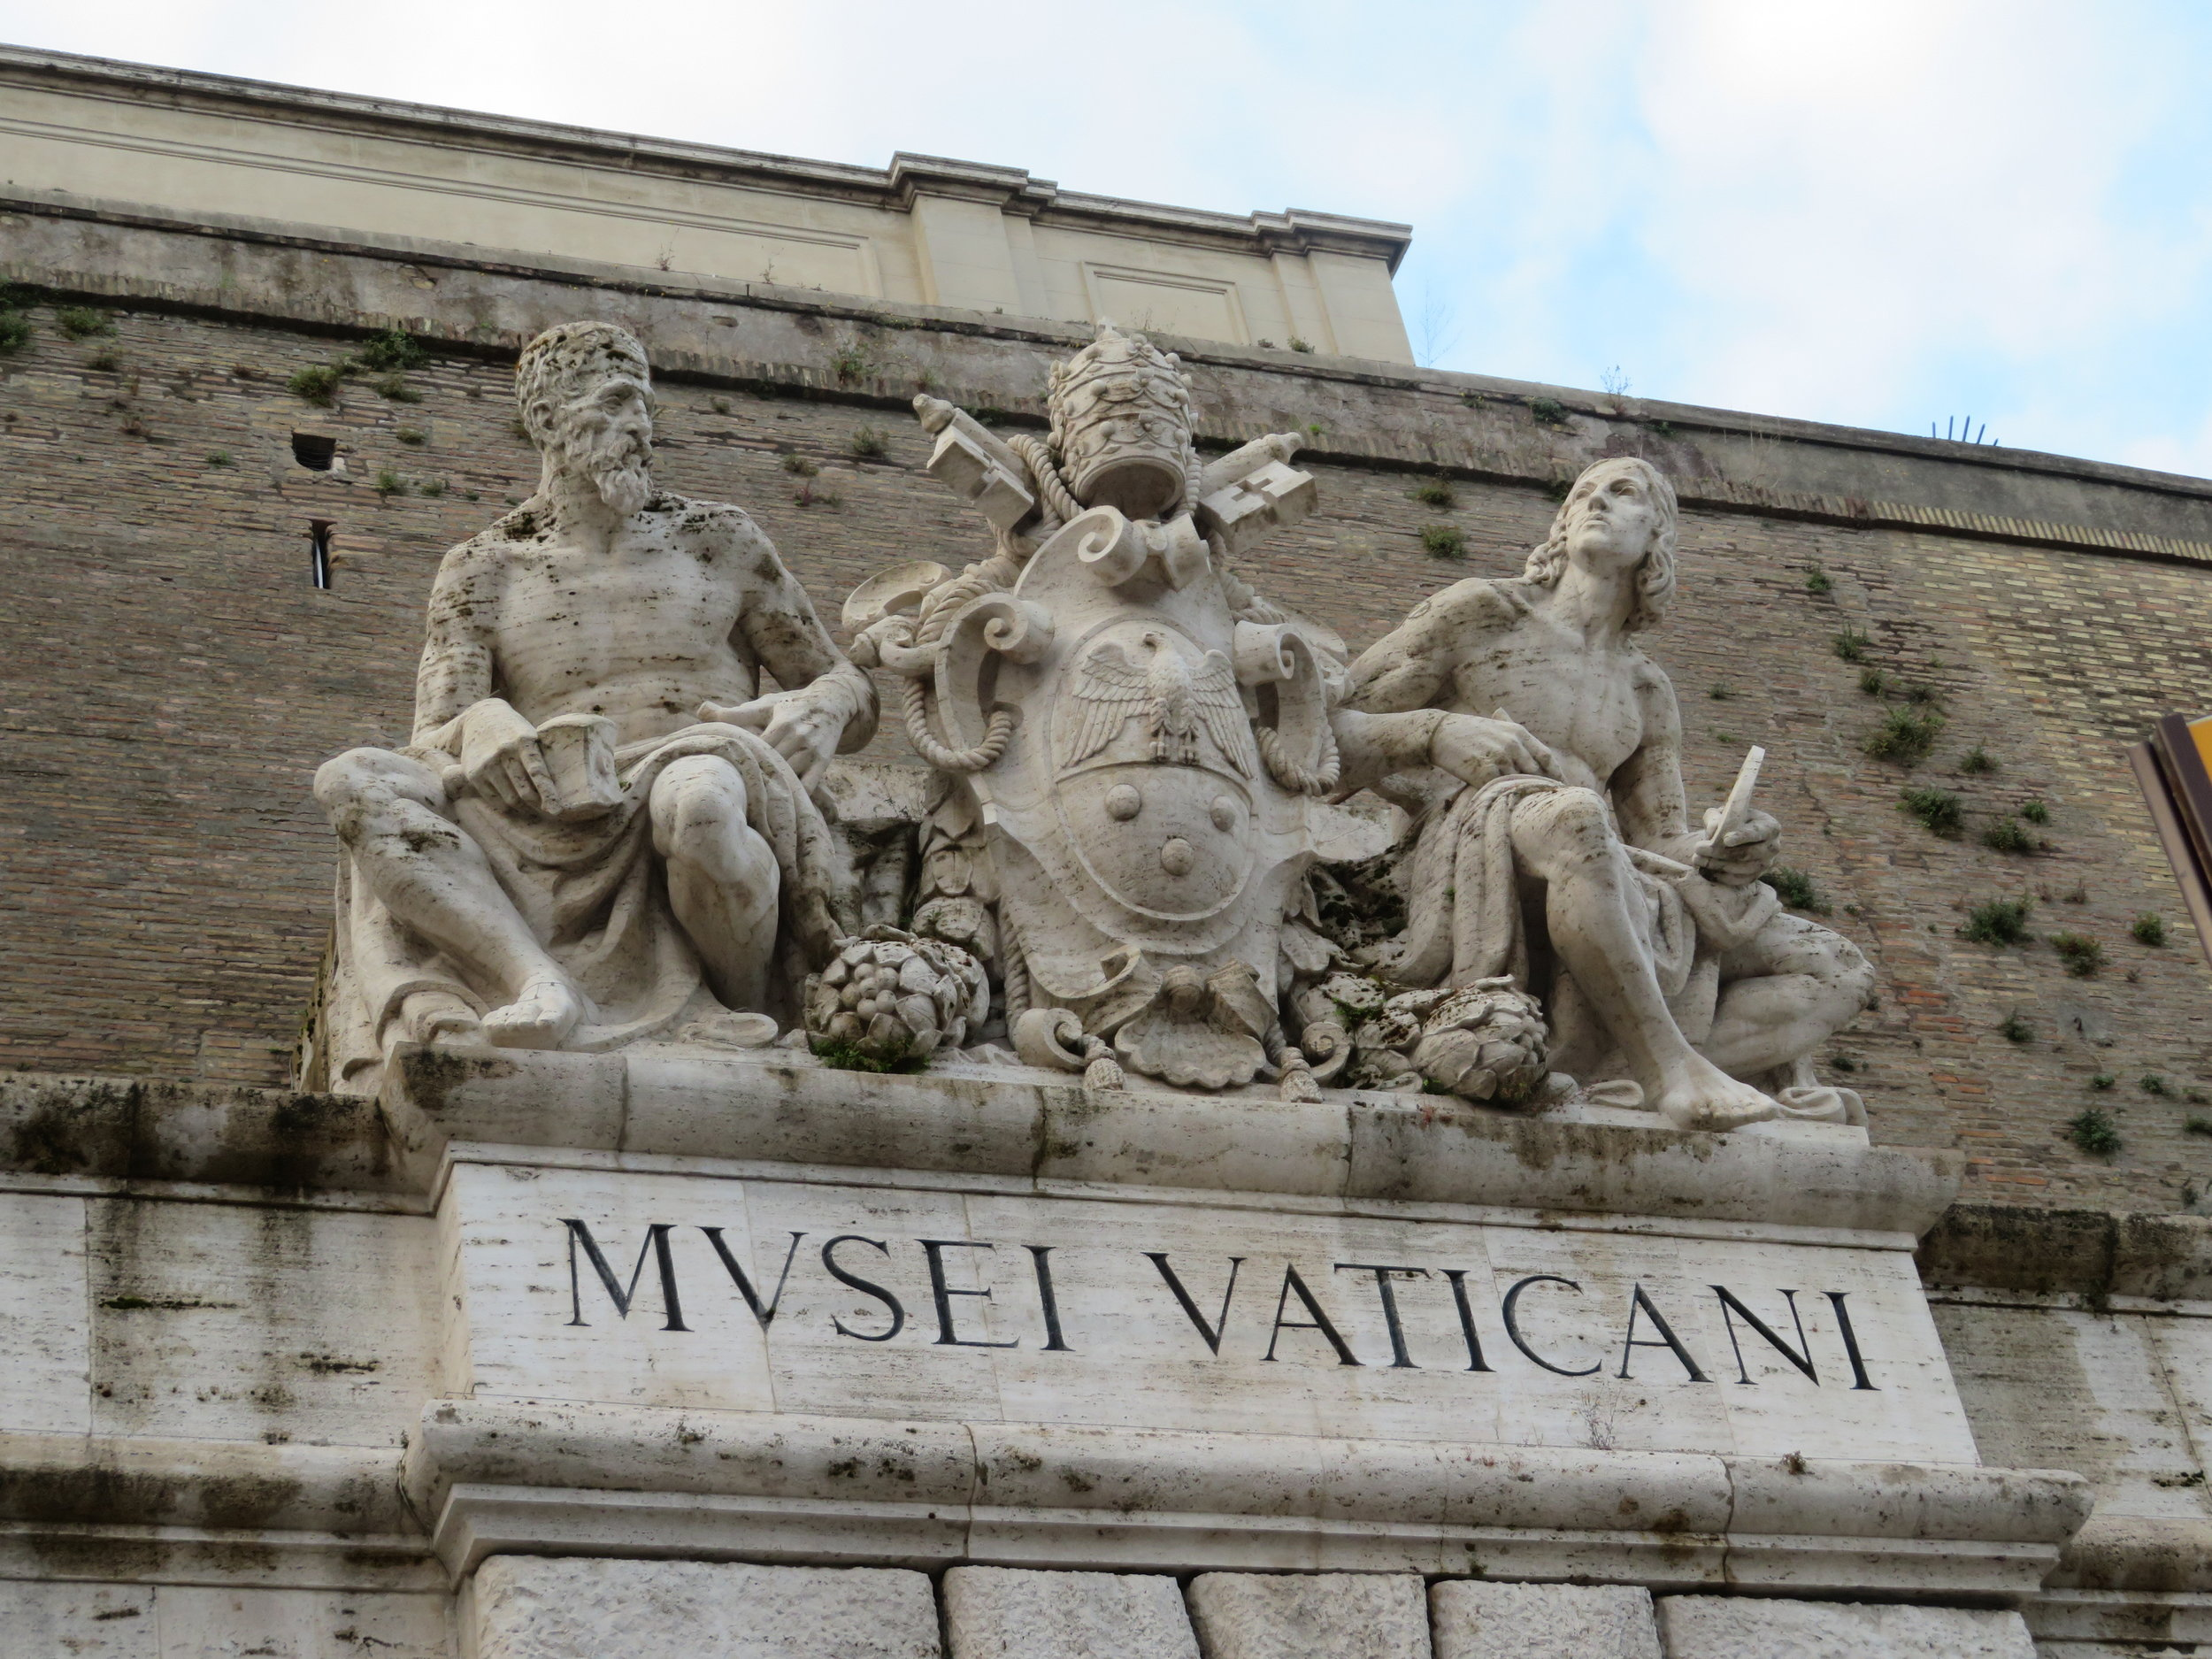 The grand entrance to the Vatican Museums, but we went in through the 'group' door.